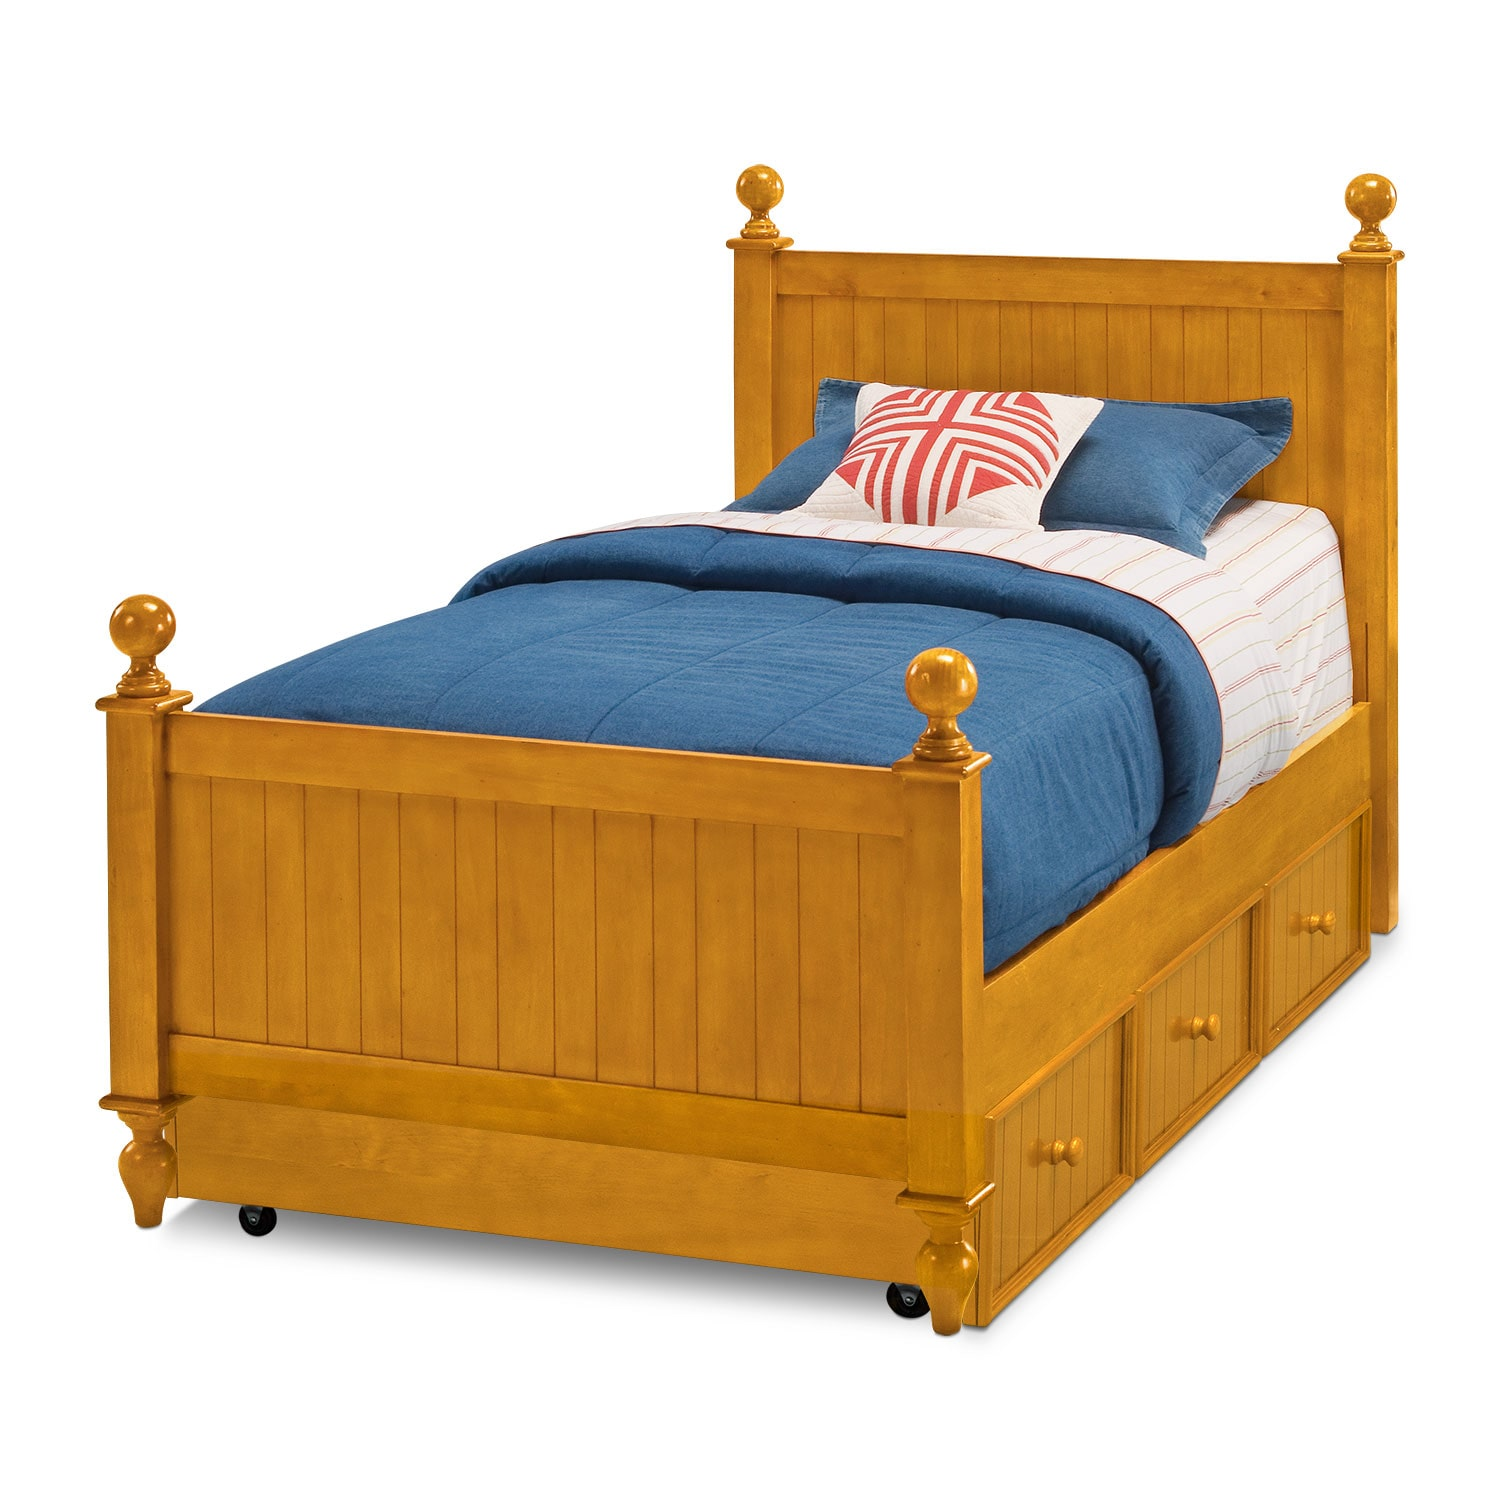 Discount Trundle Beds Colorworks Trundle Bed